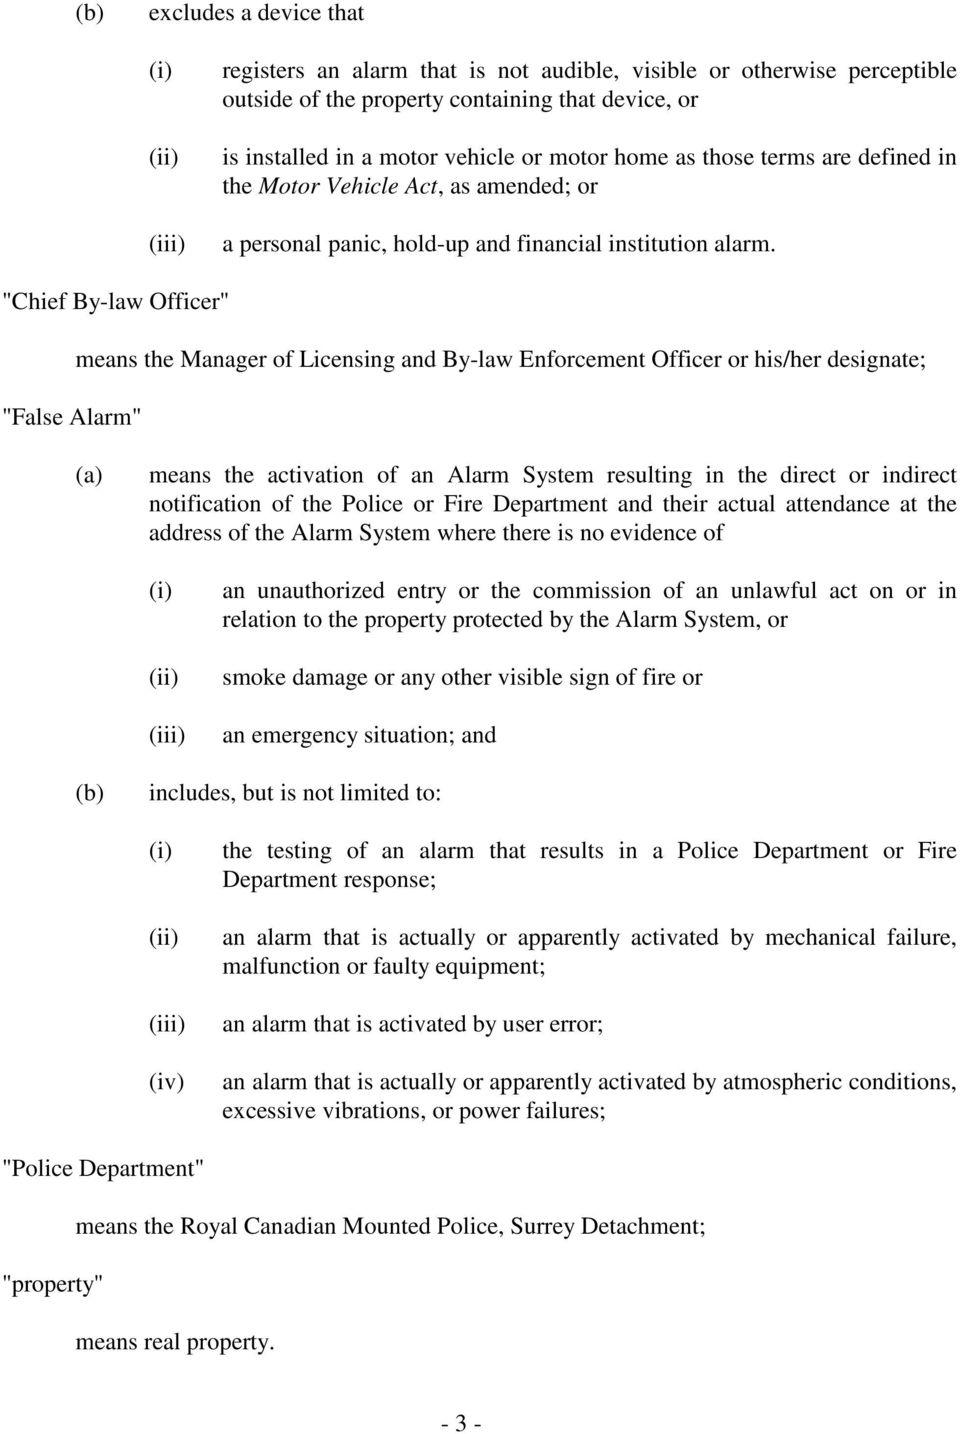 """Chief By-law Officer"" ""False Alarm"" means the Manager of Licensing and By-law Enforcement Officer or his/her designate; means the activation of an Alarm System resulting in the direct or indirect"